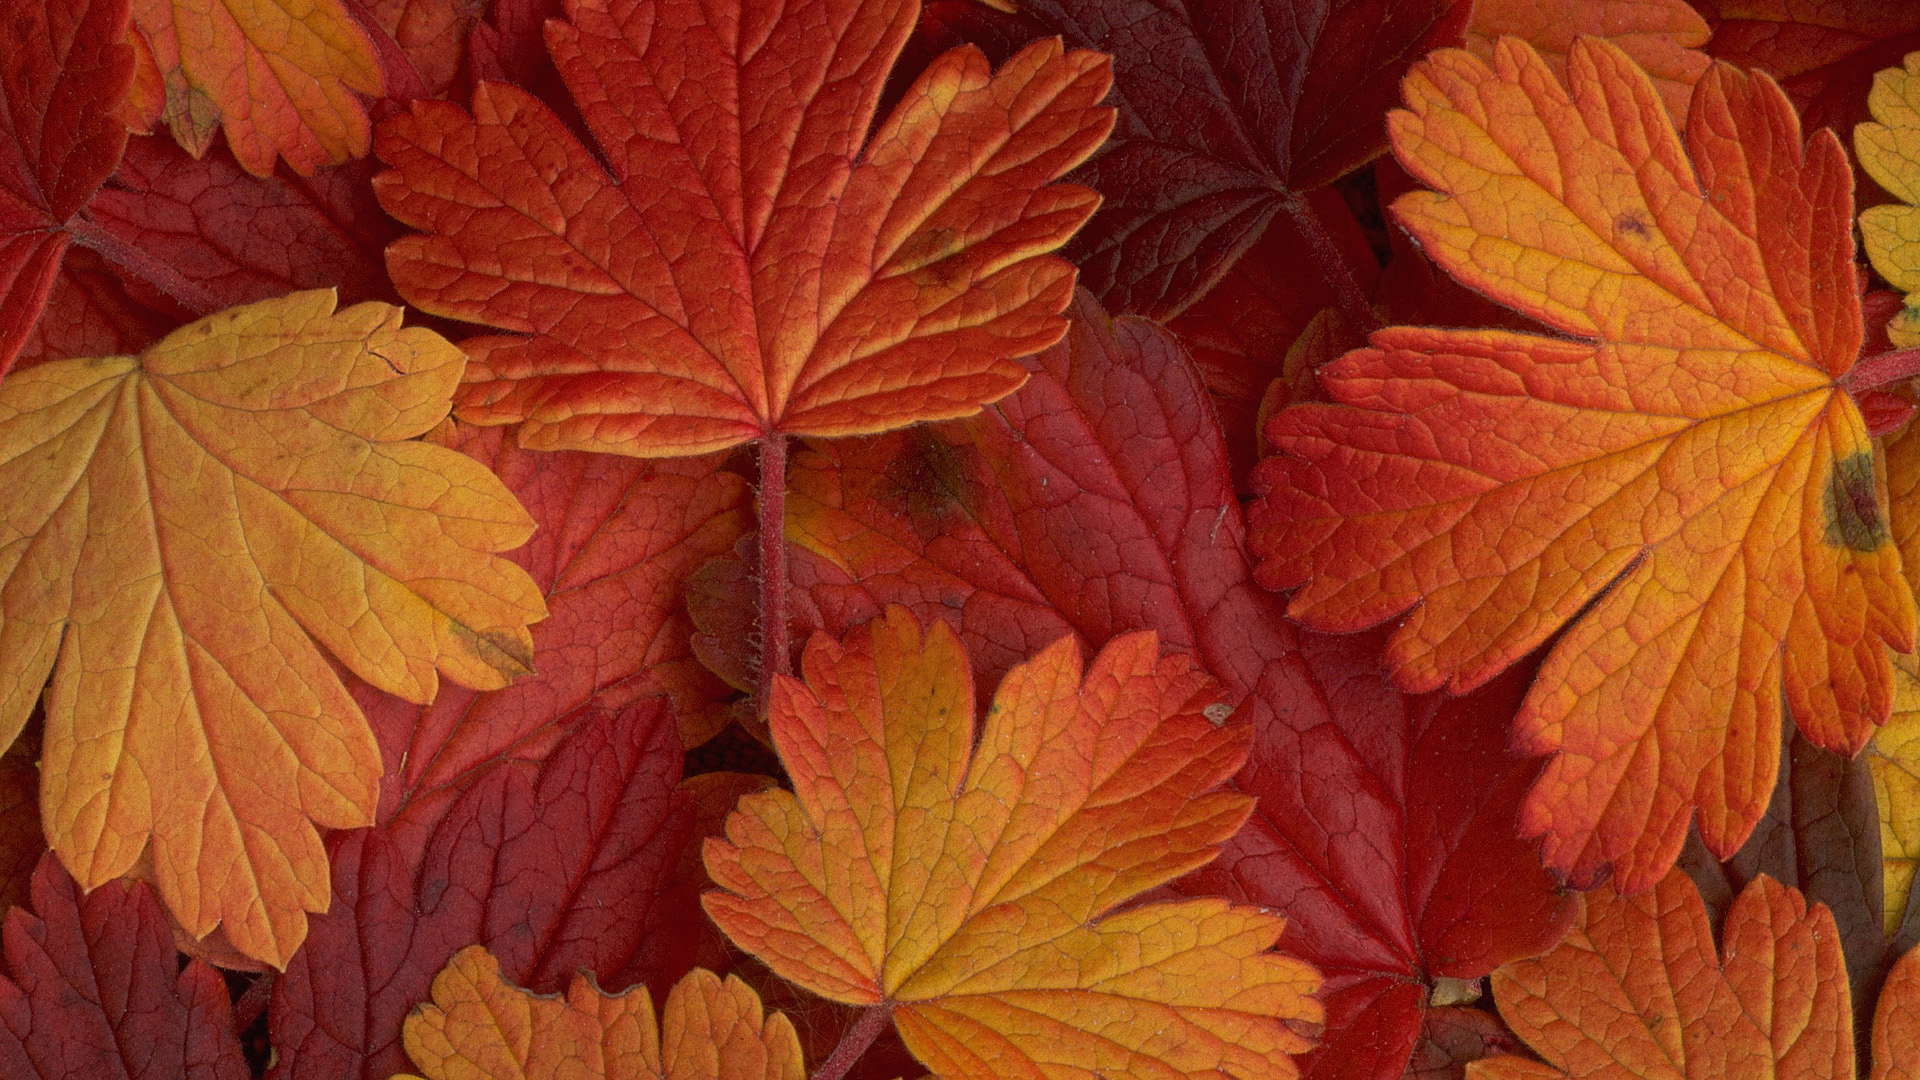 Maple Leaf Motors >> Beautiful Autumn Leaves - Wallpaper, High Definition, High ...